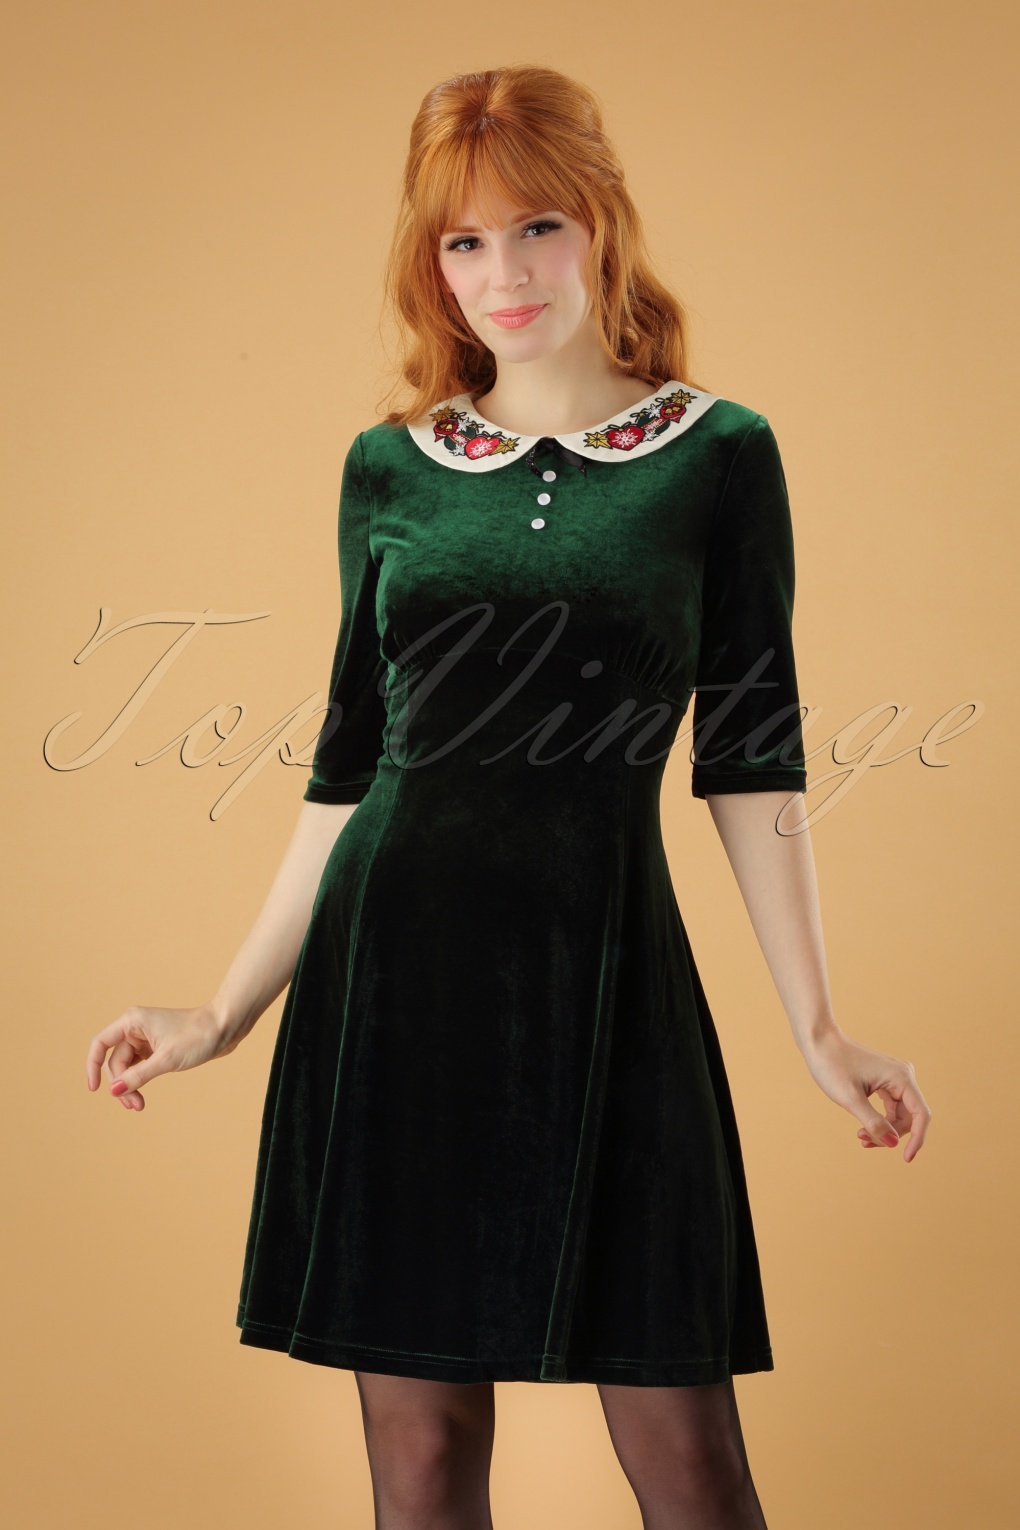 Vintage Christmas Dress | Party Dresses | Night Out Outfits 60s Nicola Mini Dress in Green £56.87 AT vintagedancer.com